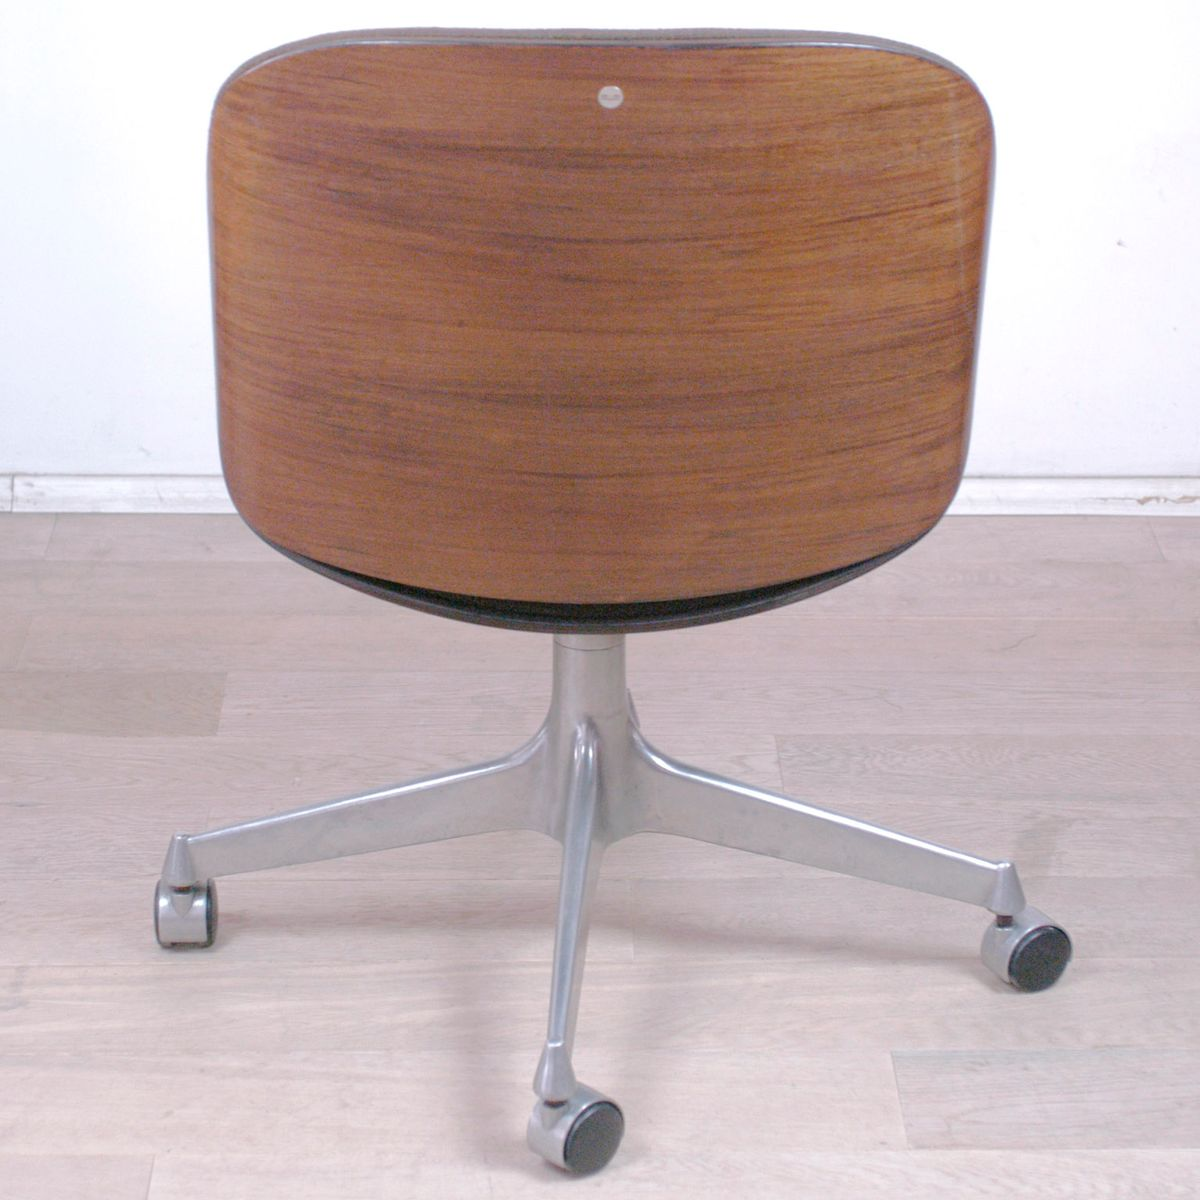 Vintage Swivel Office Chair By Ico Parisi For MIM For Sale